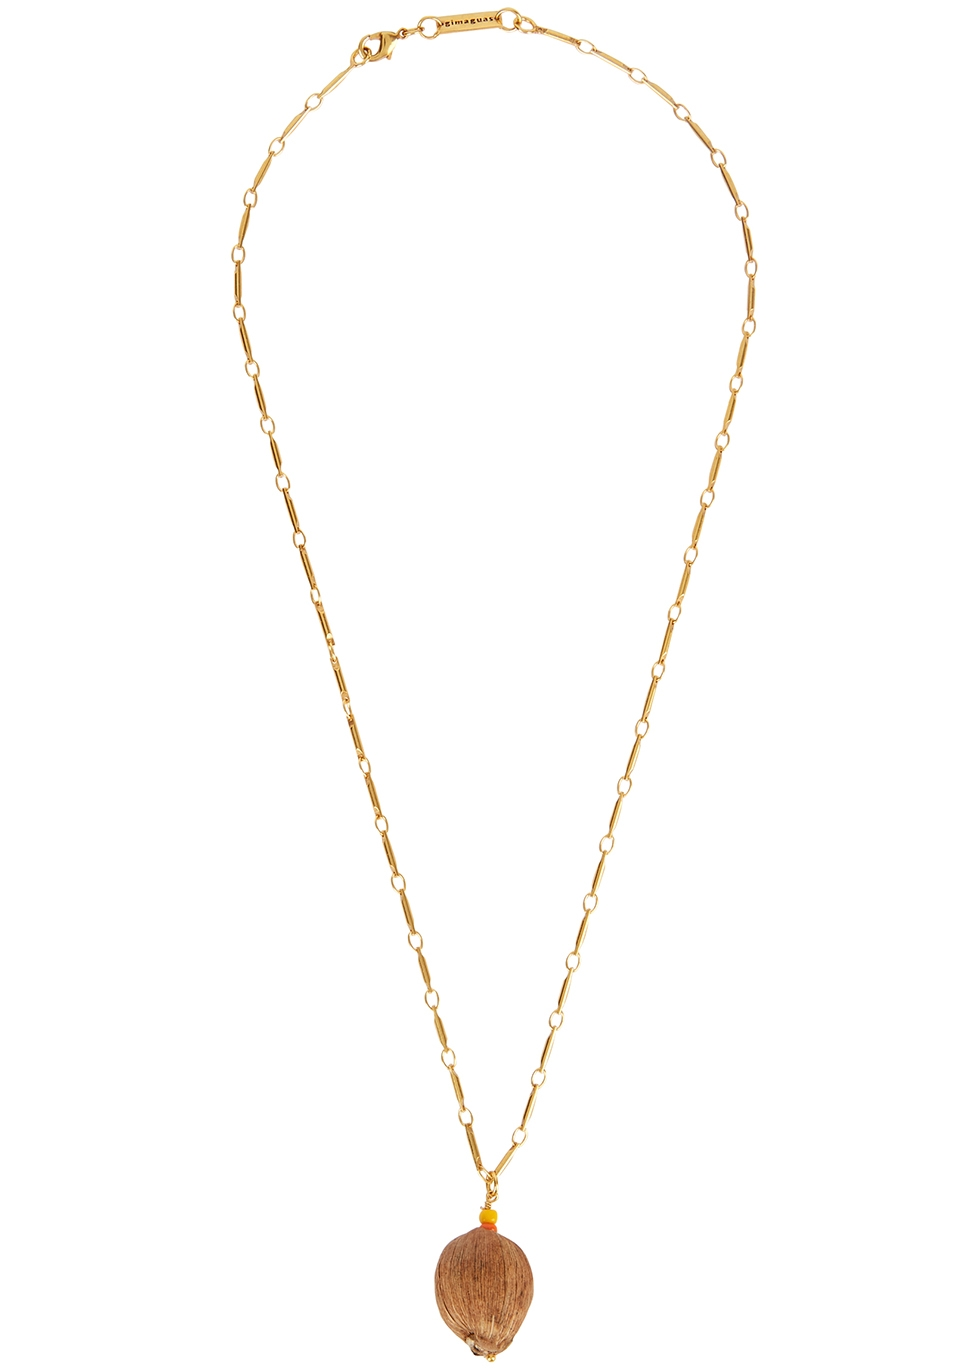 Coconut gold-plated necklace